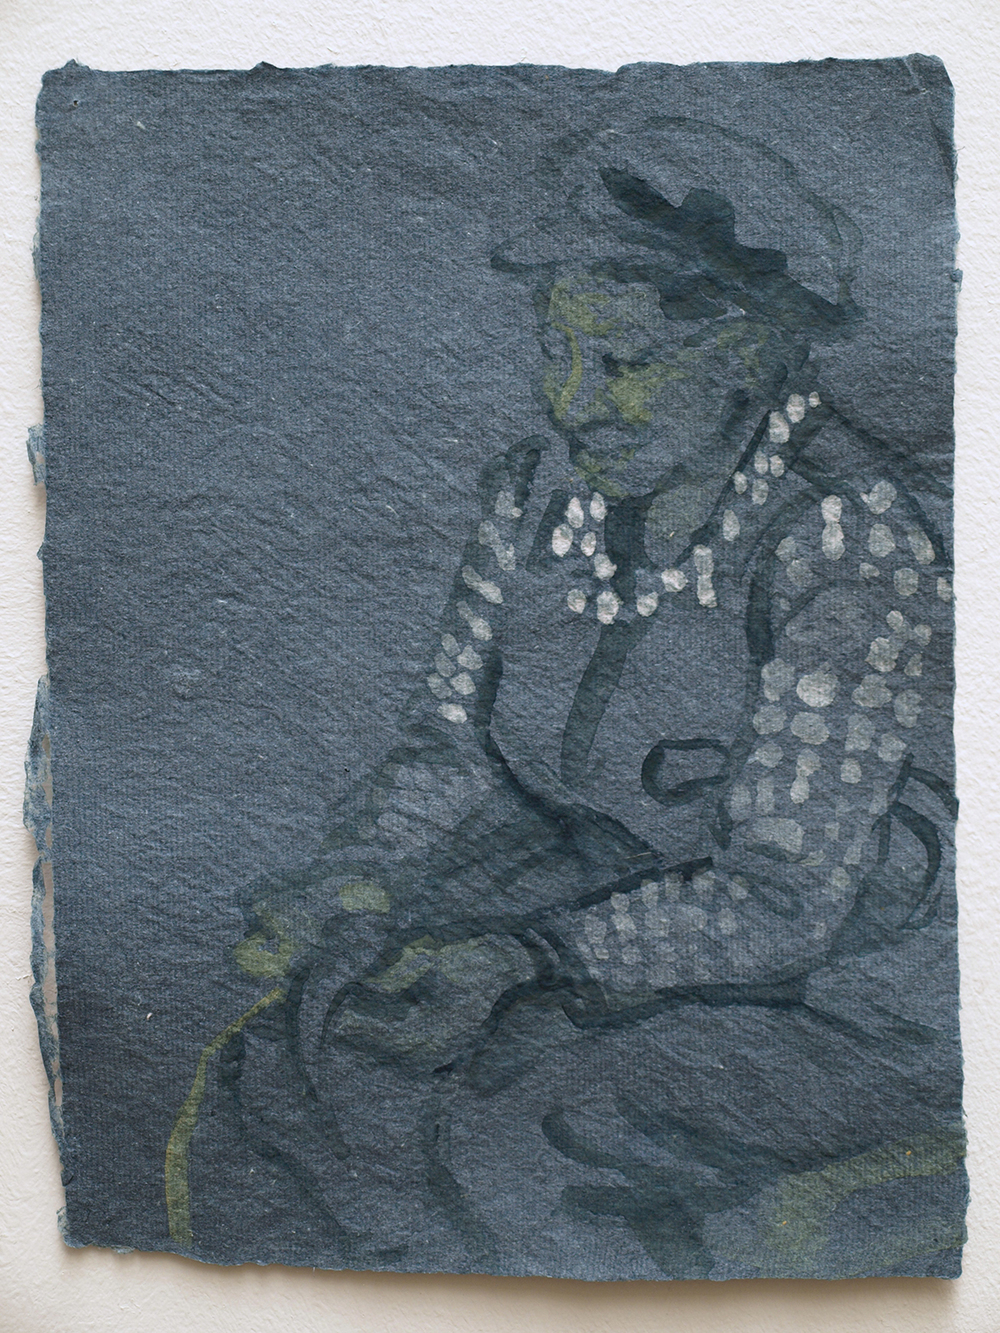 Yu He peeling bark for paper making, 2011